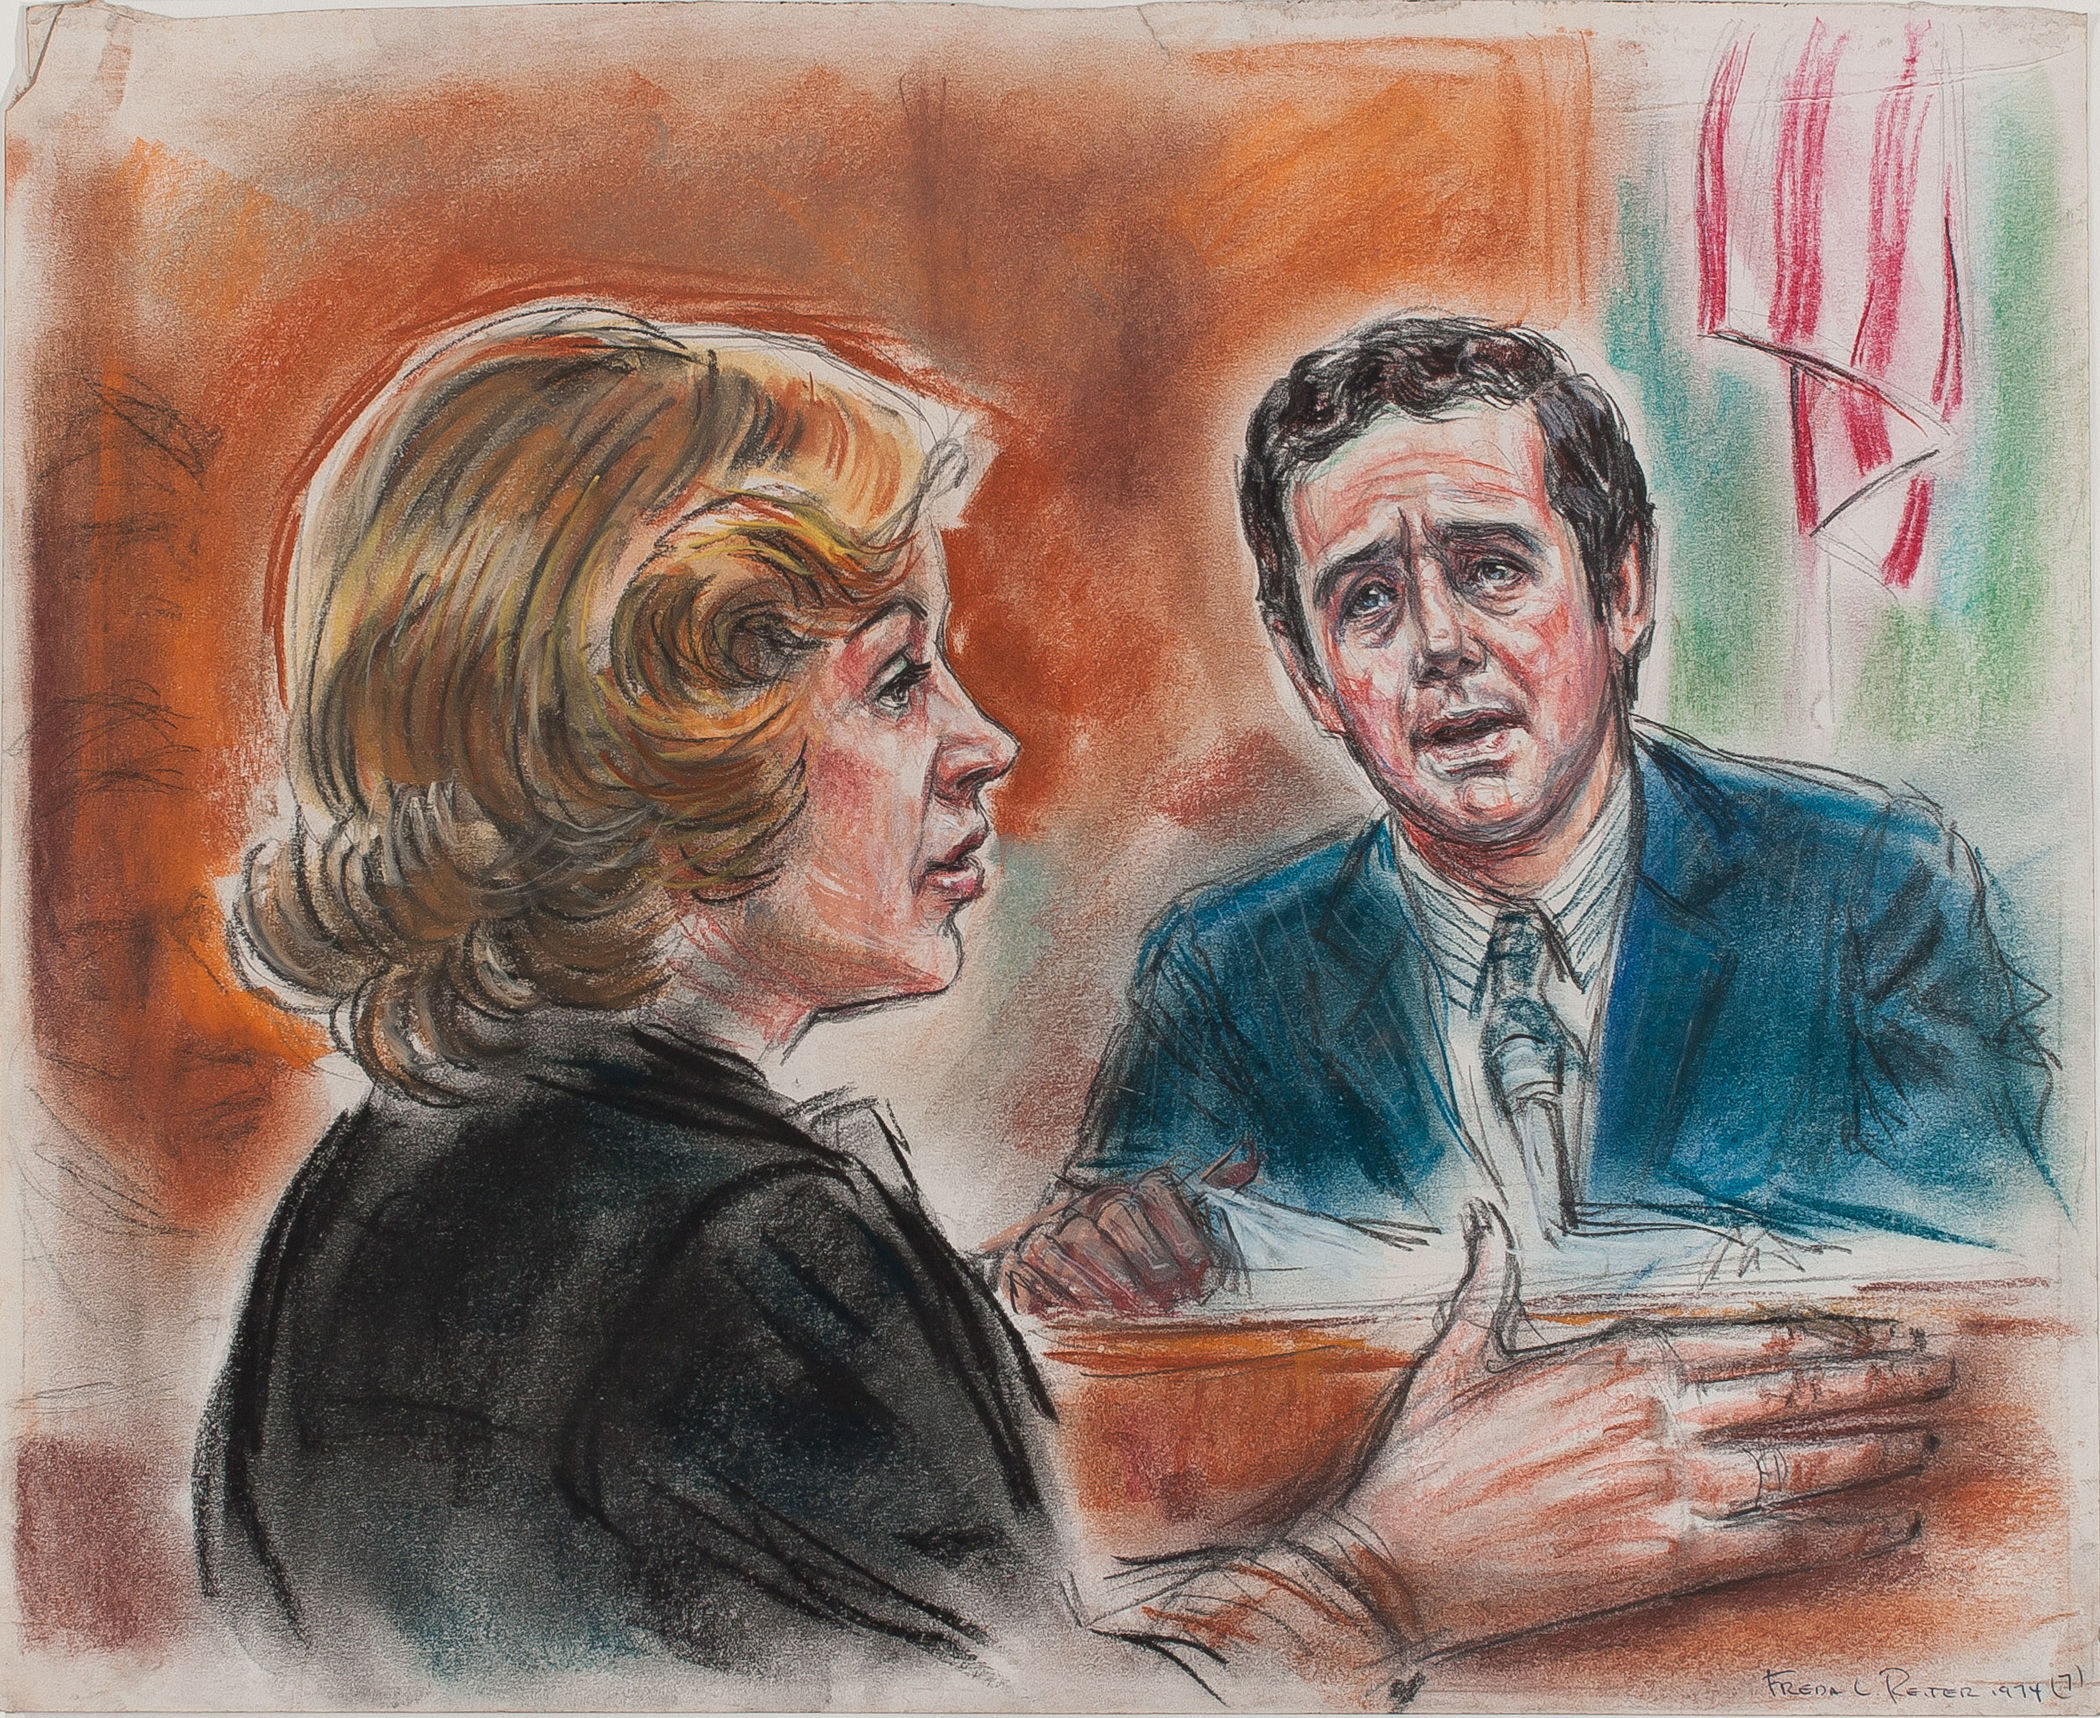 12. Freda Reiter, Prosecutor Jill Wine-Volner Questions Jeb Magruder, Courtesy online Gallery 98